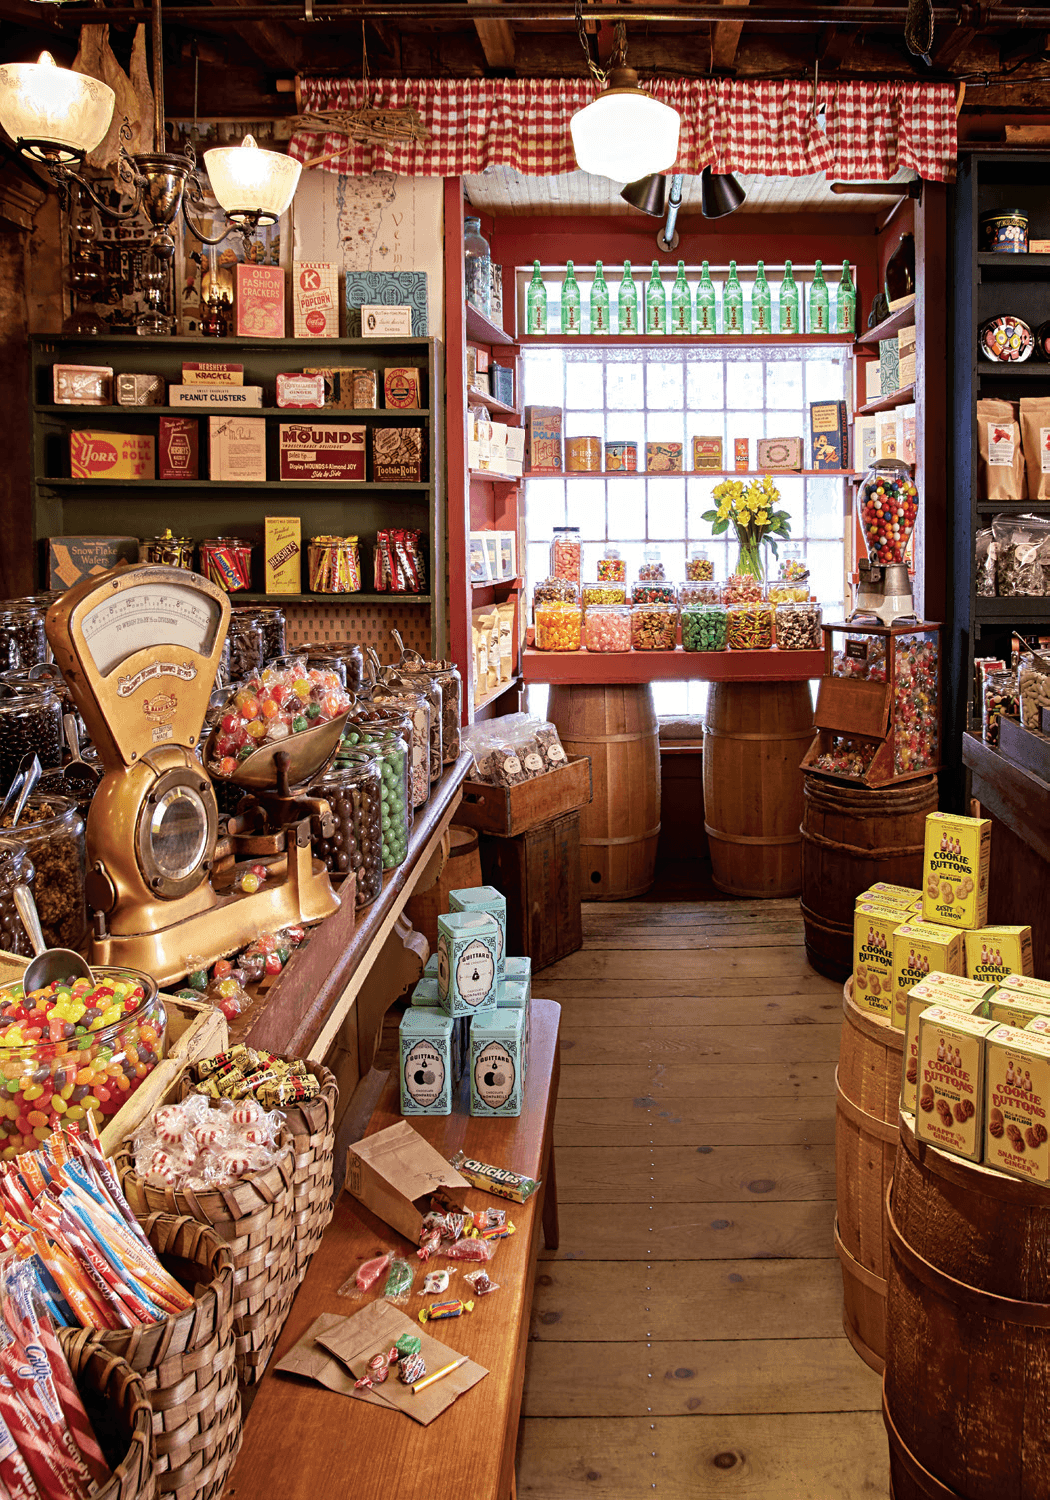 Image of candy in the Vermont Country Store